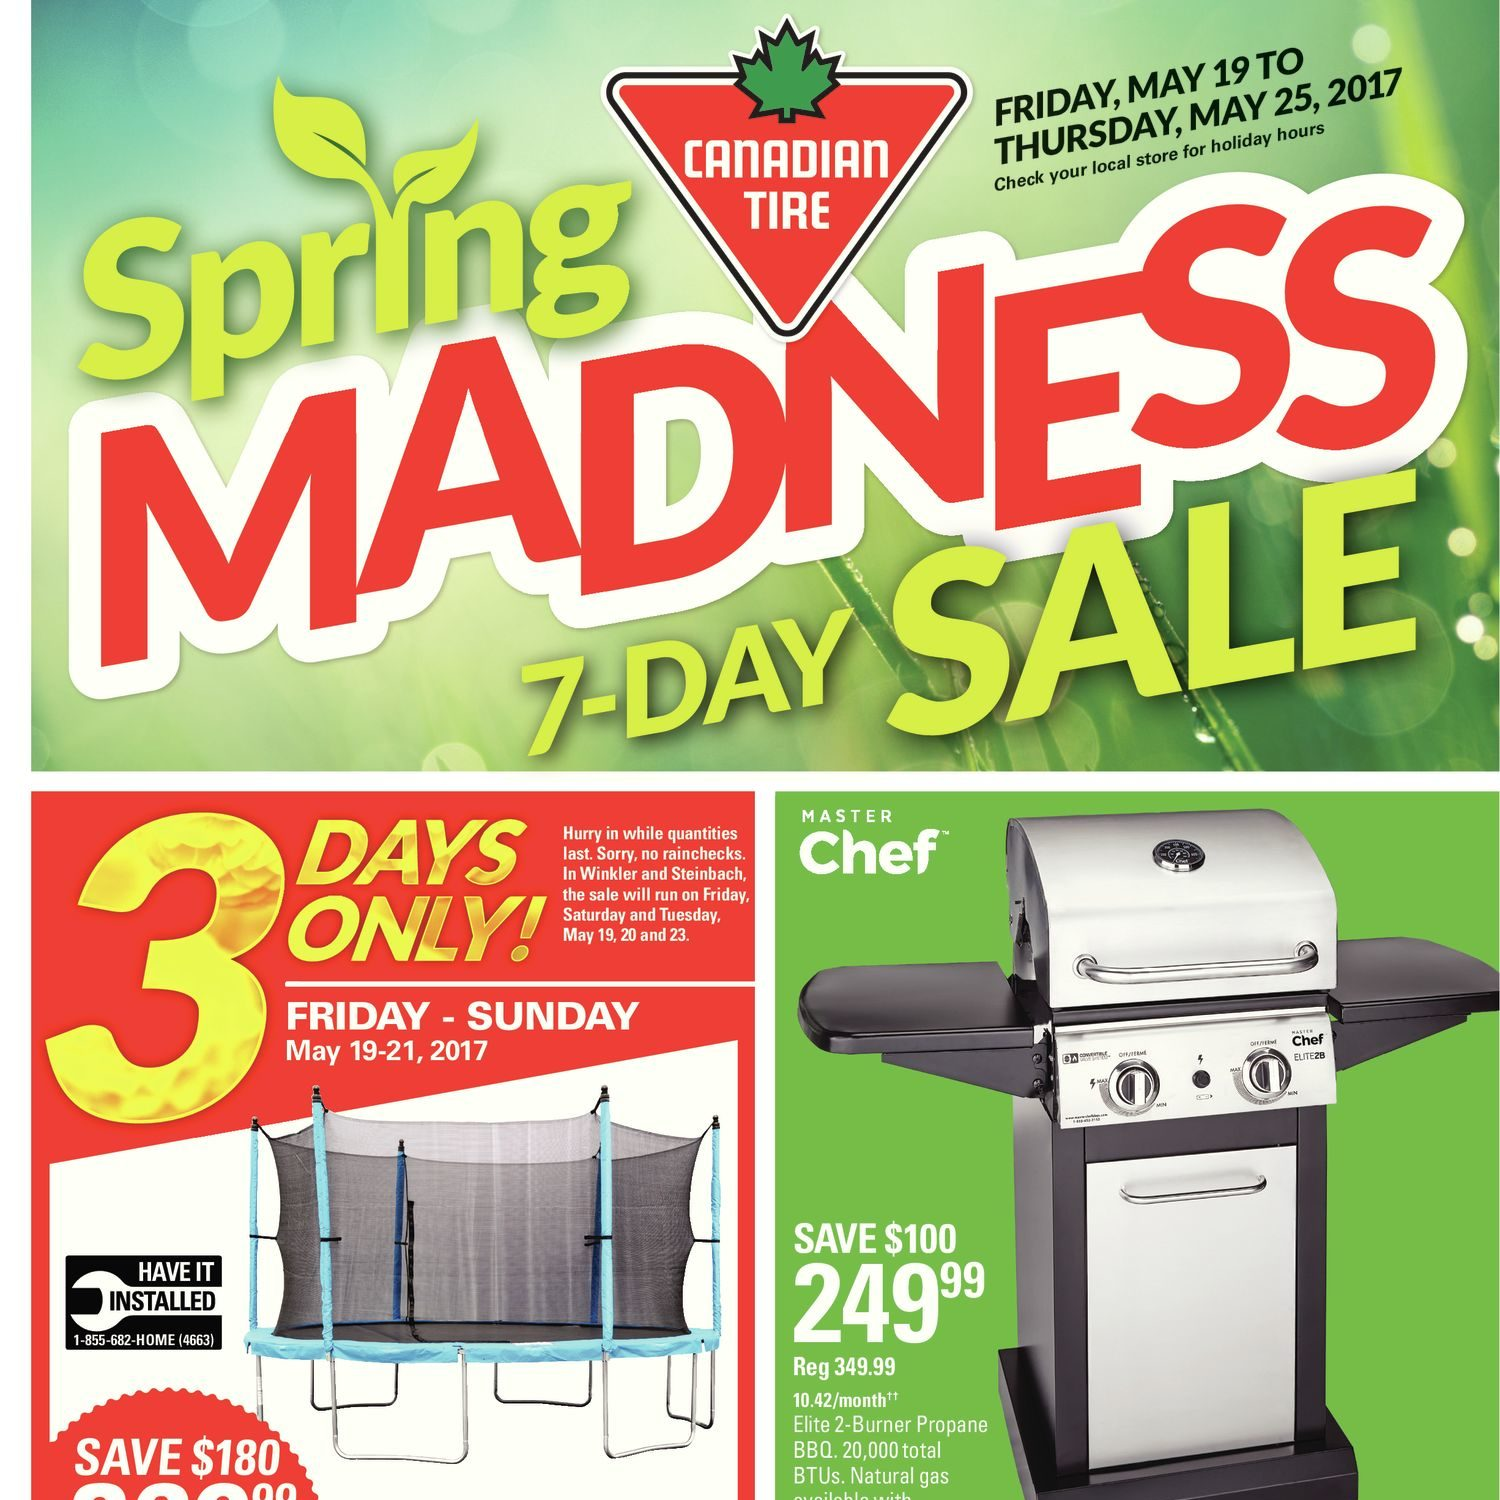 Canadian Tire Weekly Flyer Spring Madness 7 Day Sale May 19 25 Trailer Wiring Harness Kit